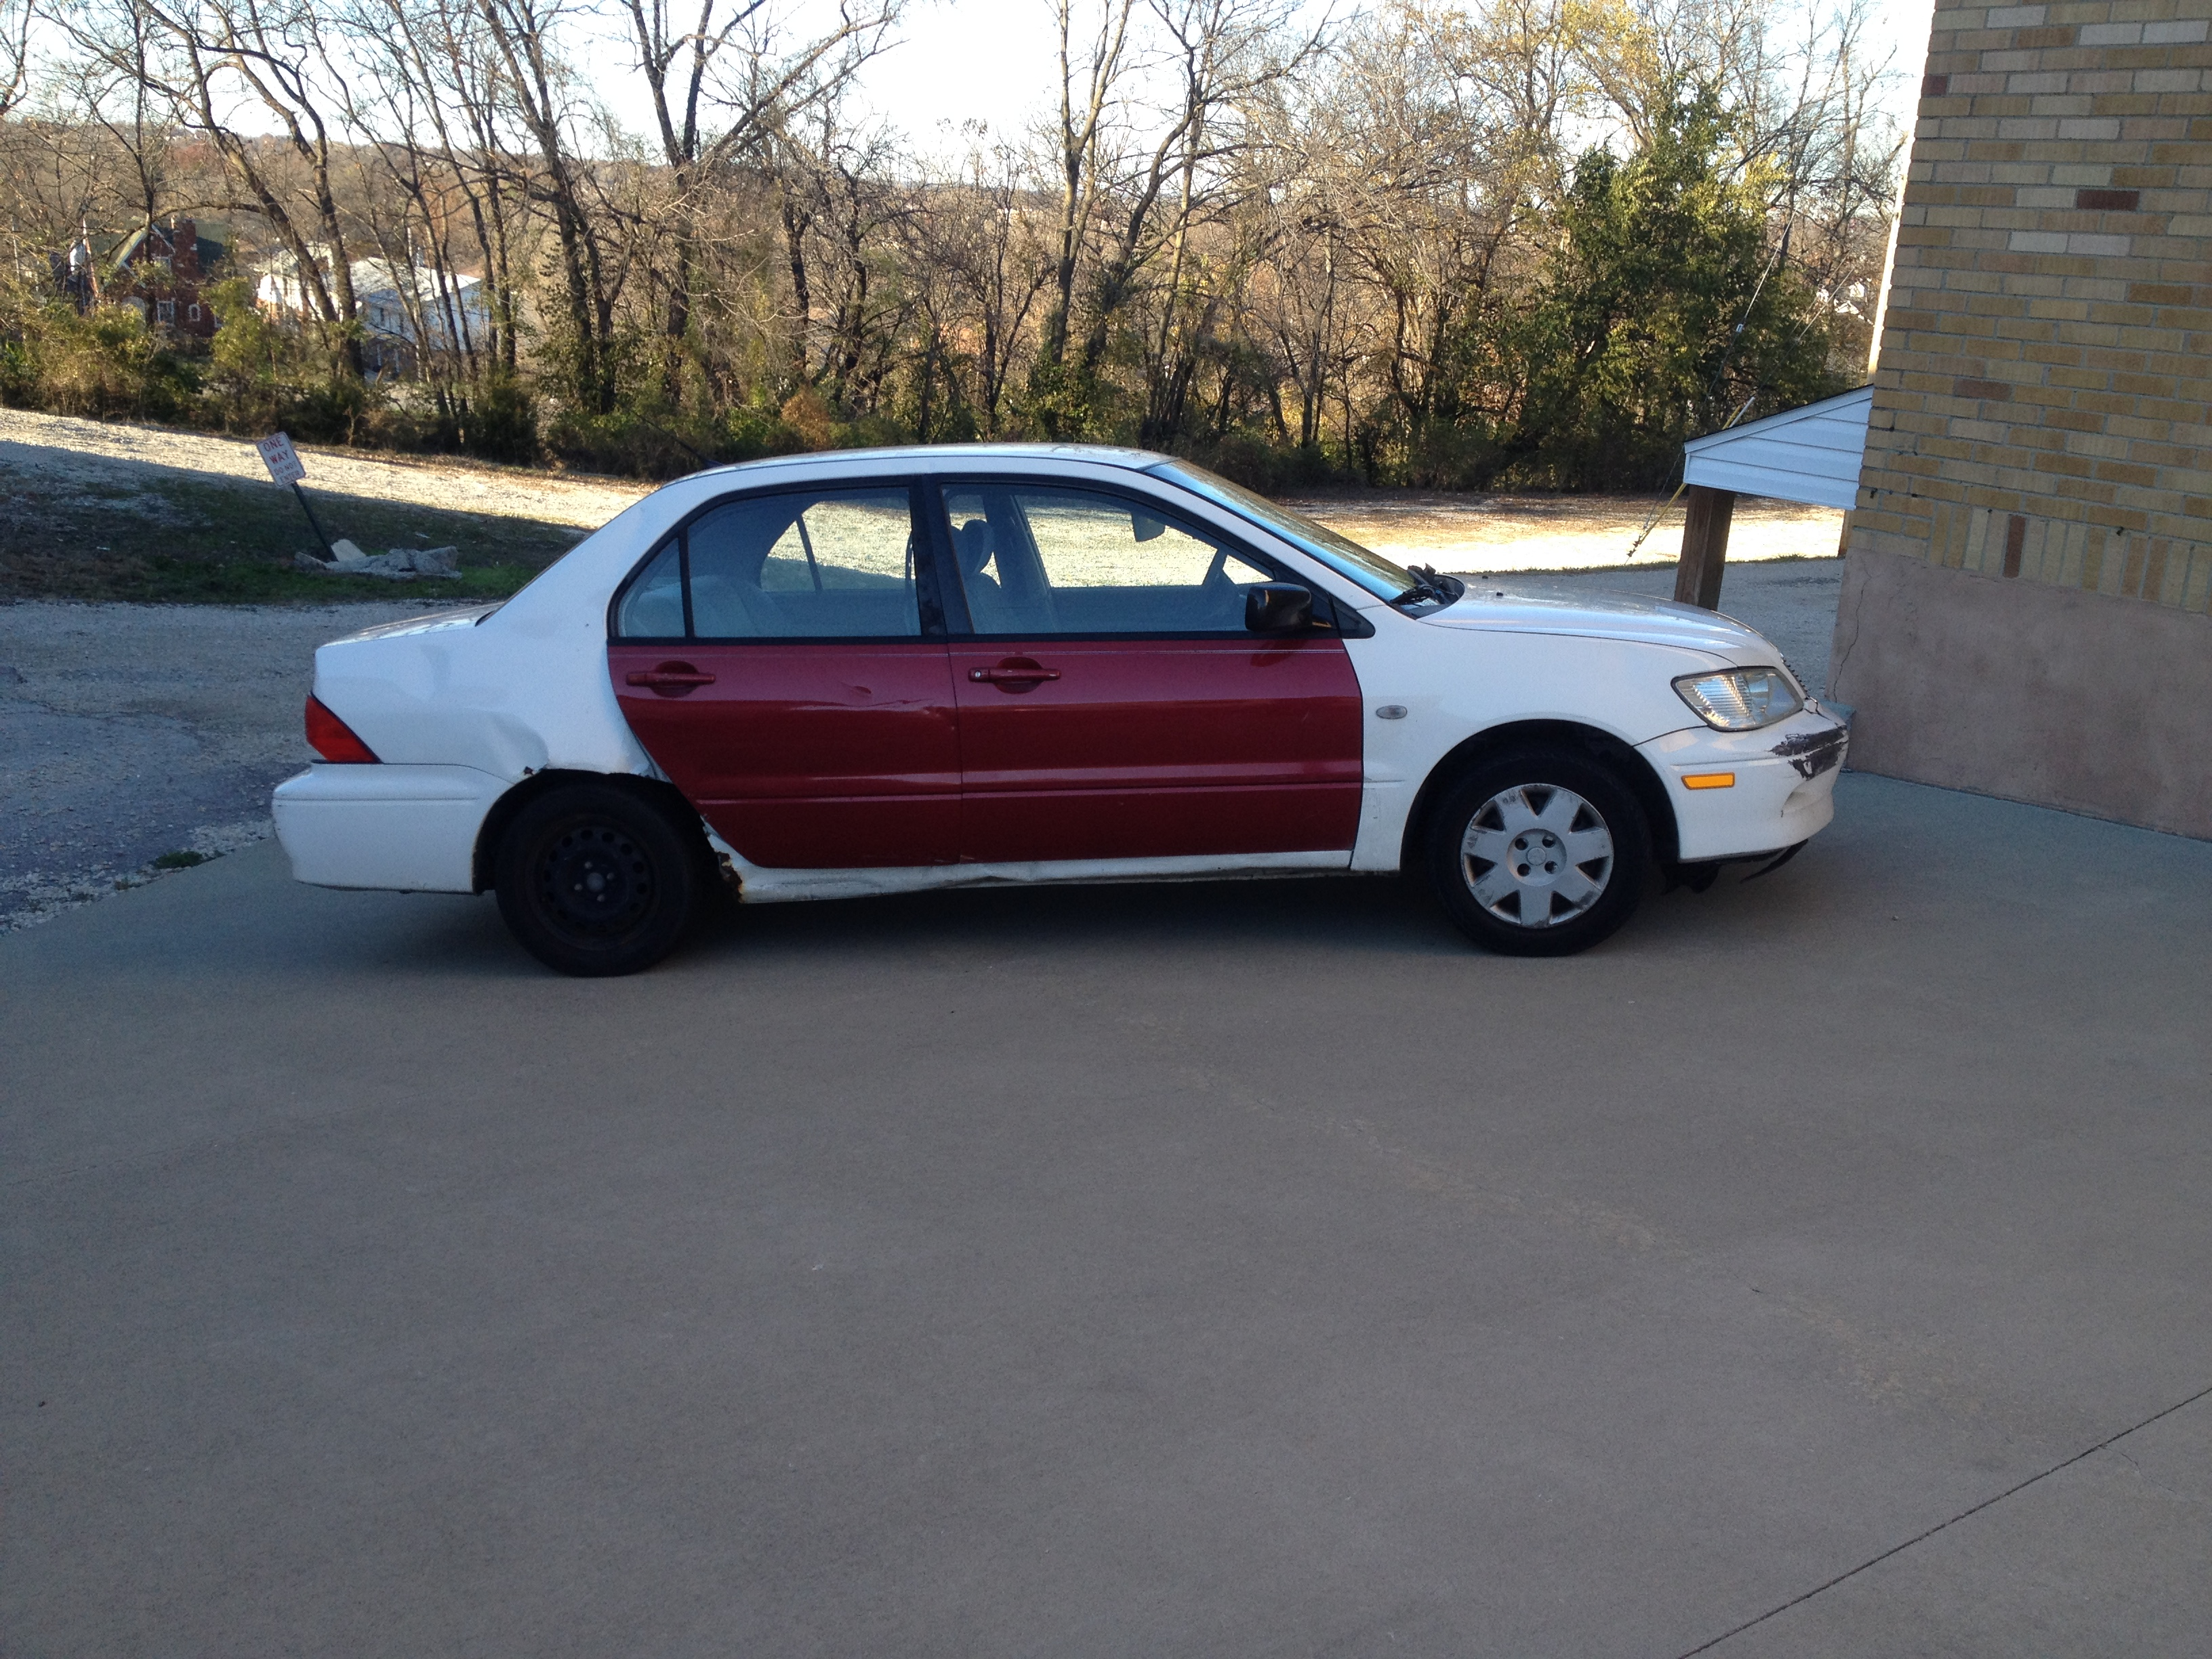 Cash for Cars Hamilton, OH | Sell Your Junk Car | The Clunker Junker